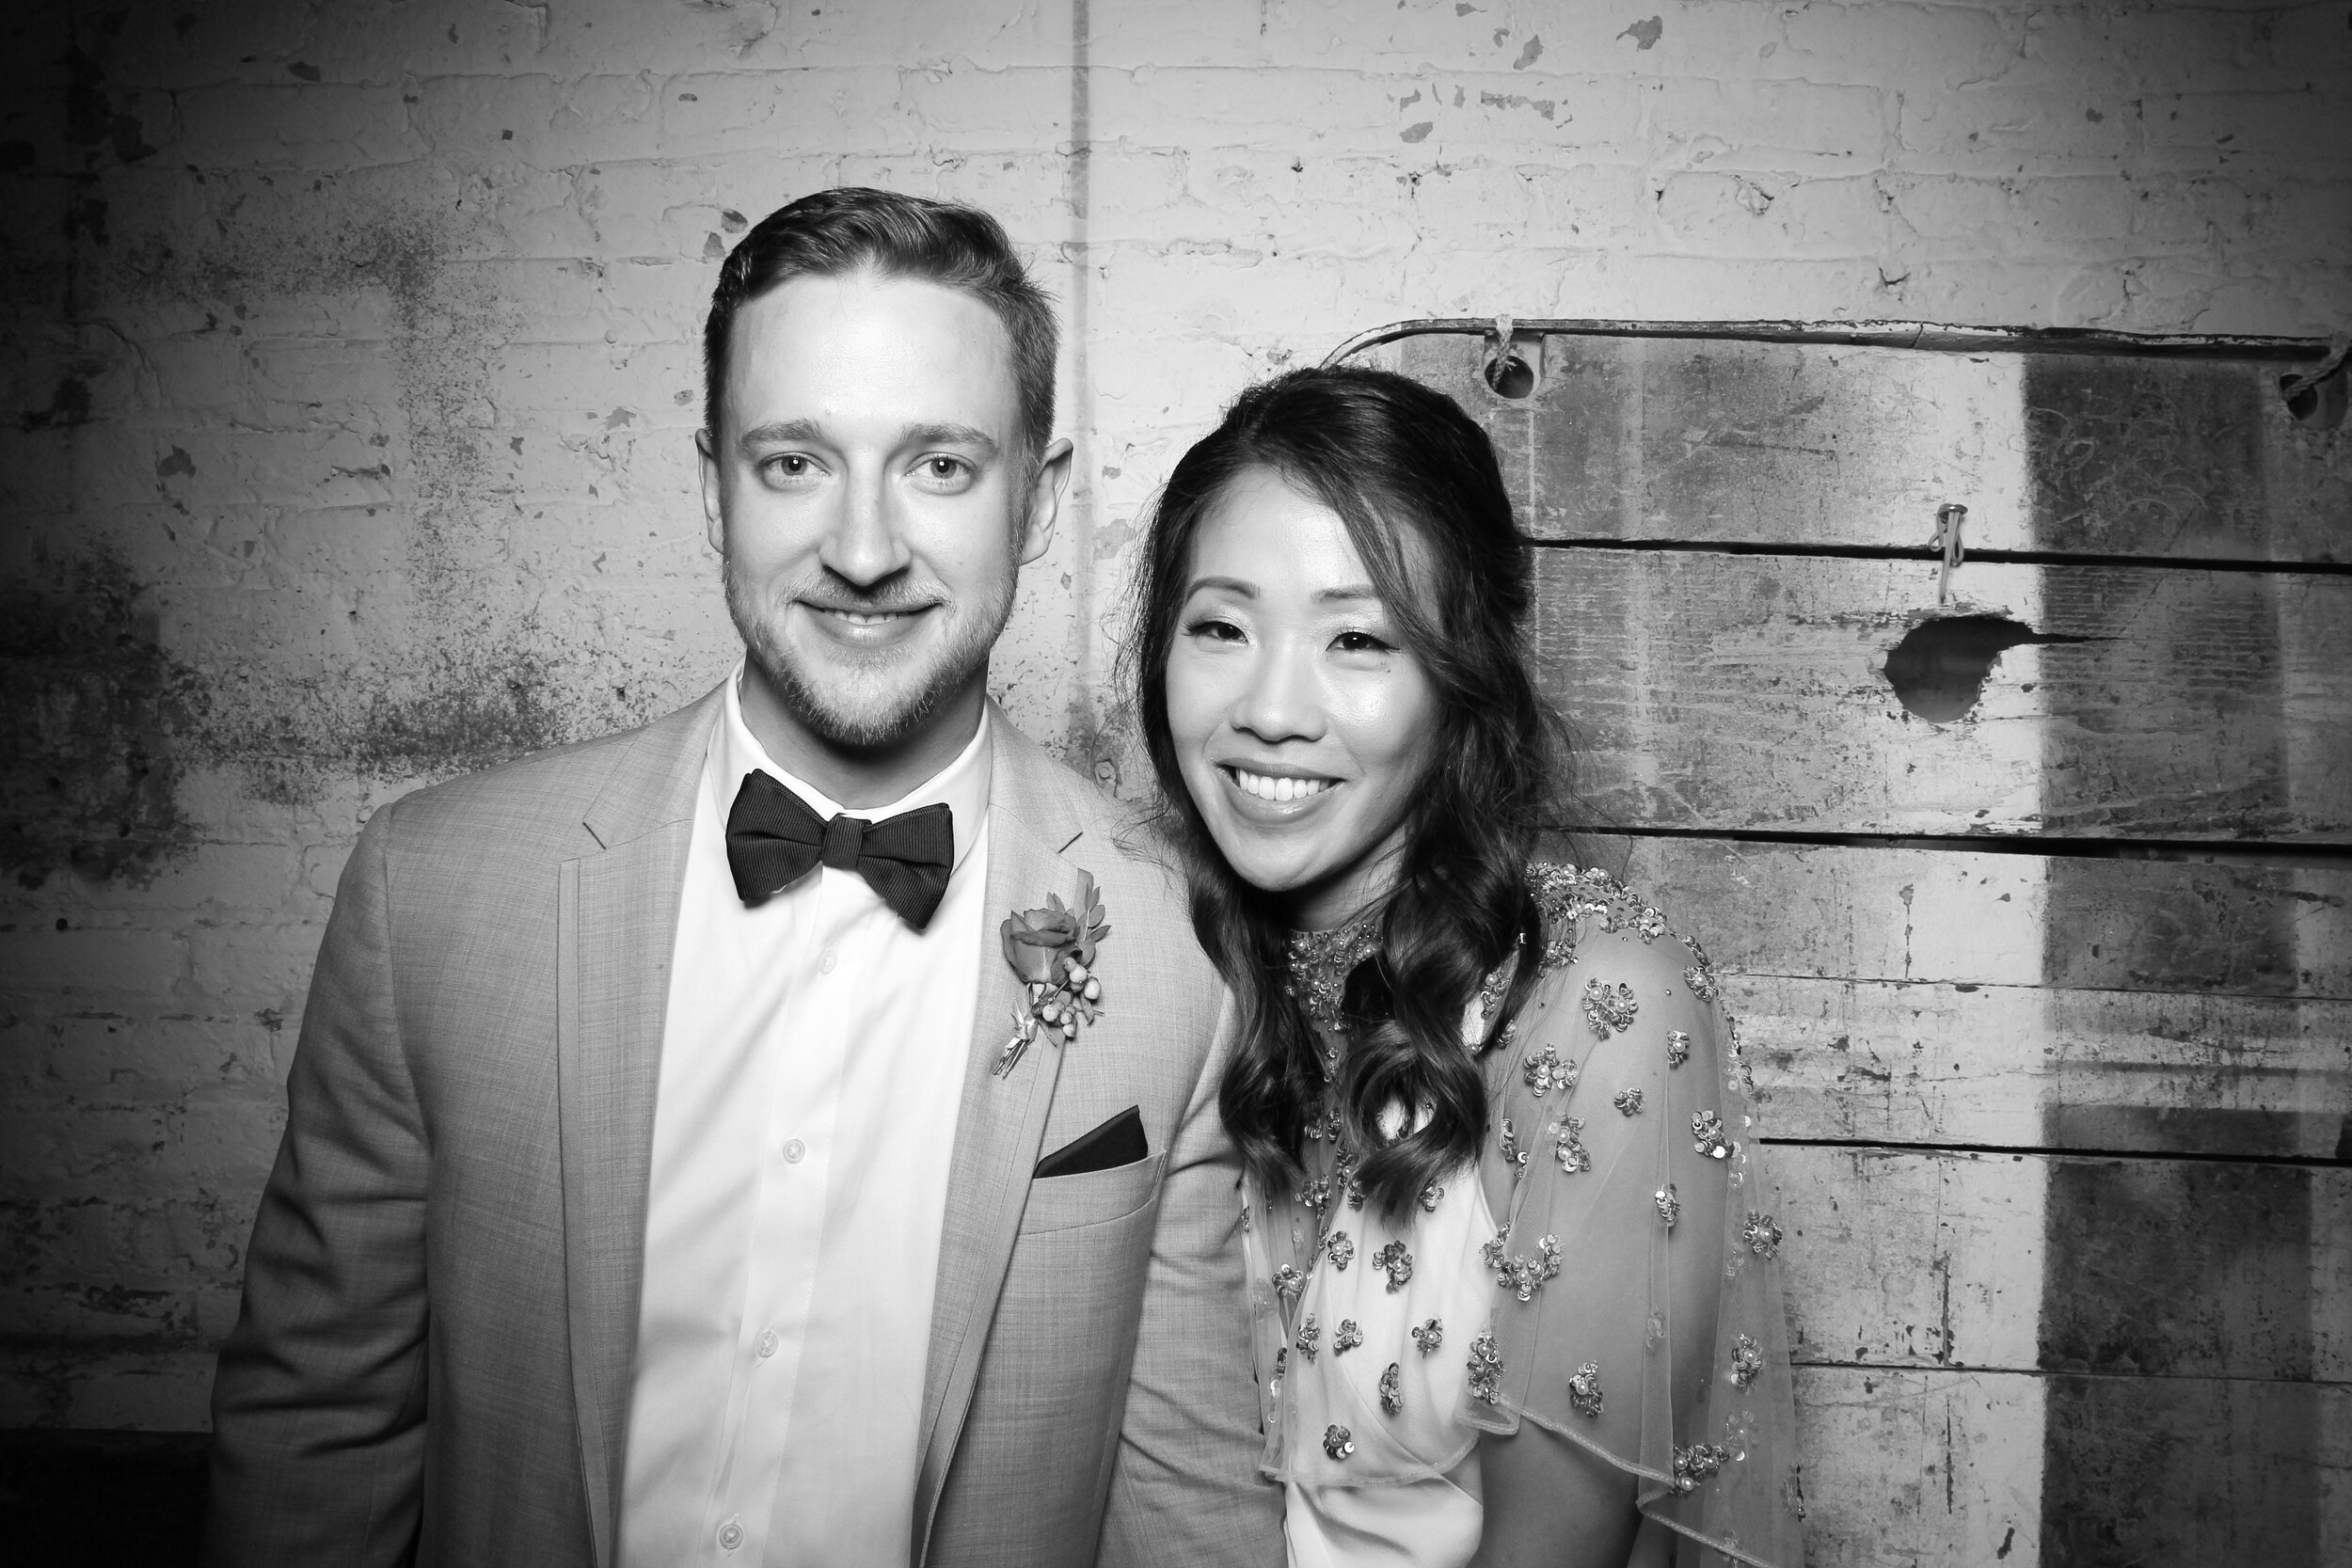 Chicago_Vintage_Wedding_Photobooth_Joinery_07.jpg